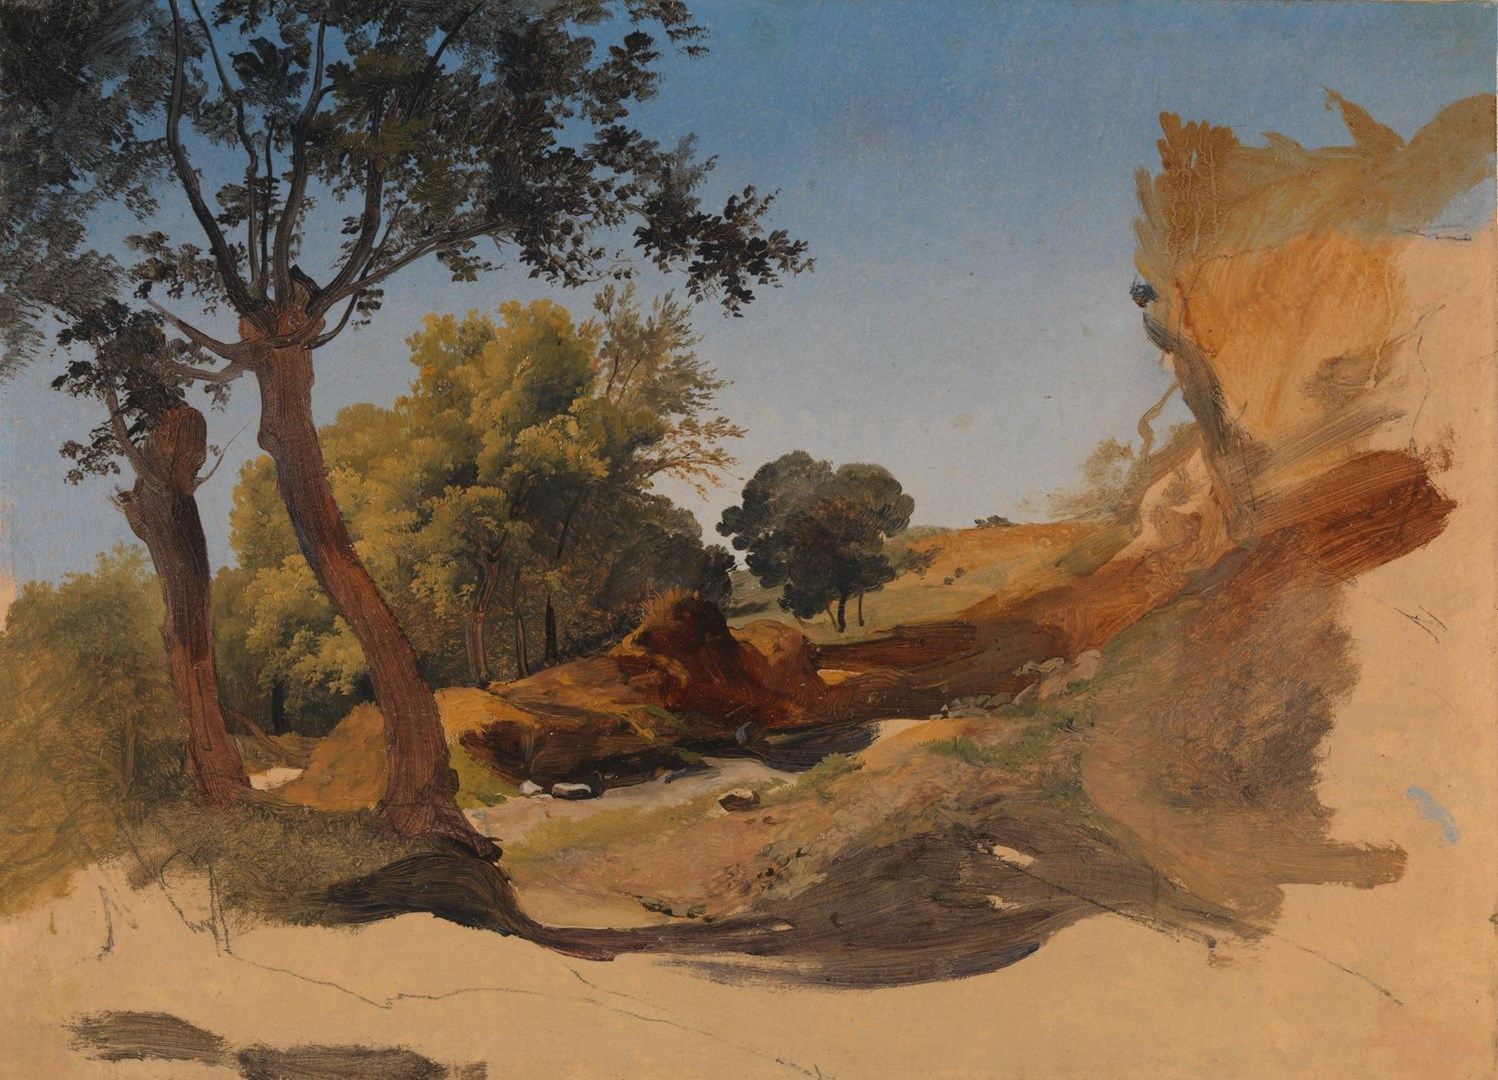 Landscape with Trees and Rocks by Giovanni-Battista Camuccini